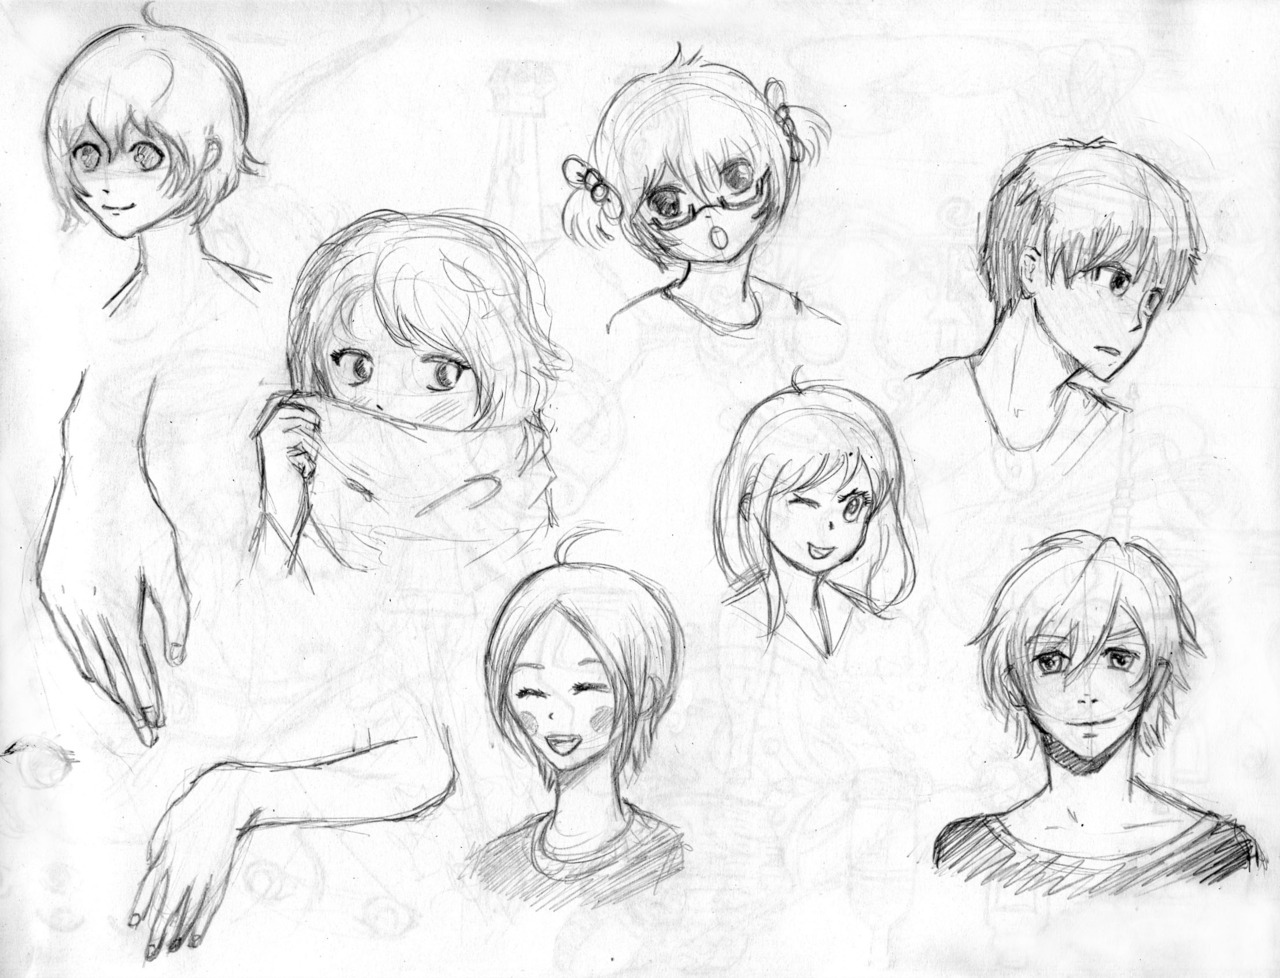 1280x978 Some Sketches Of Cute Boys And Girls For Today